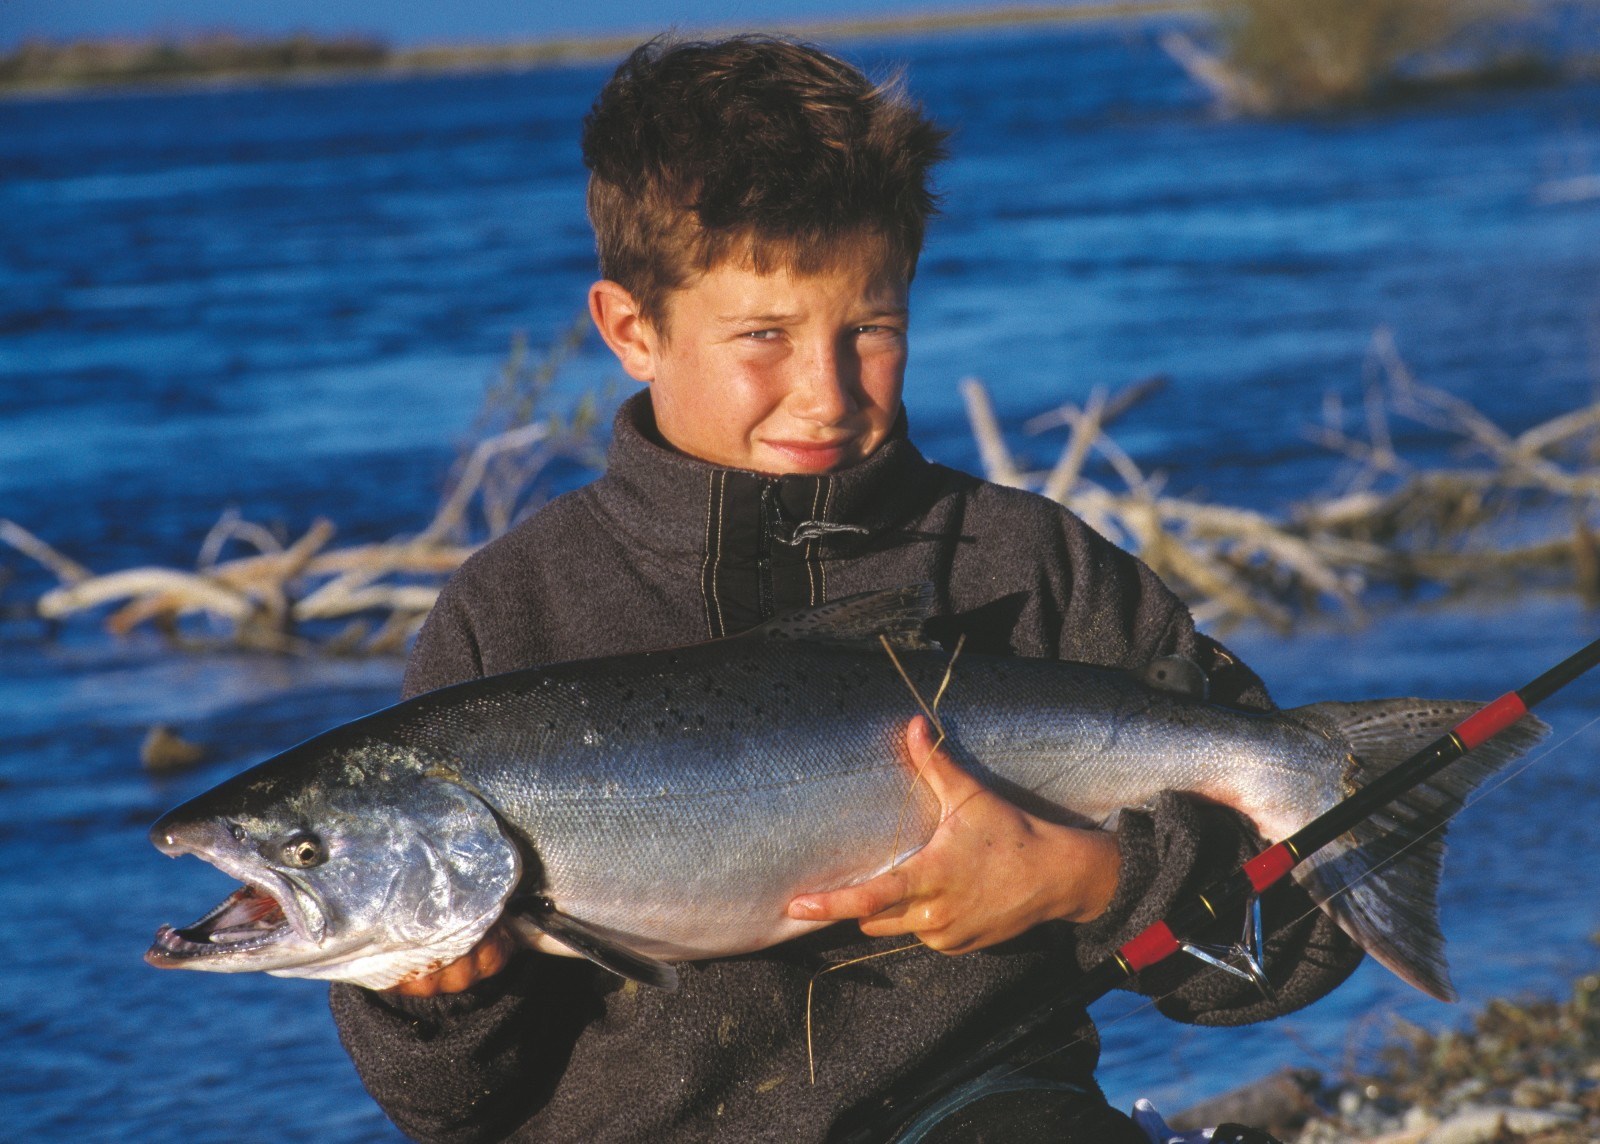 Historically prized for its eel, whitebait, lamprey and mullet fisheries, the Waitaki is now a Mecca for trout and salmon anglers. The author's son Jeremy, here displaying a 6 kg salmon he landed from the Waitaki, caught his first trout at the age of three. The river is one of relatively few in the country to host thriving populations of both trout and salmon.